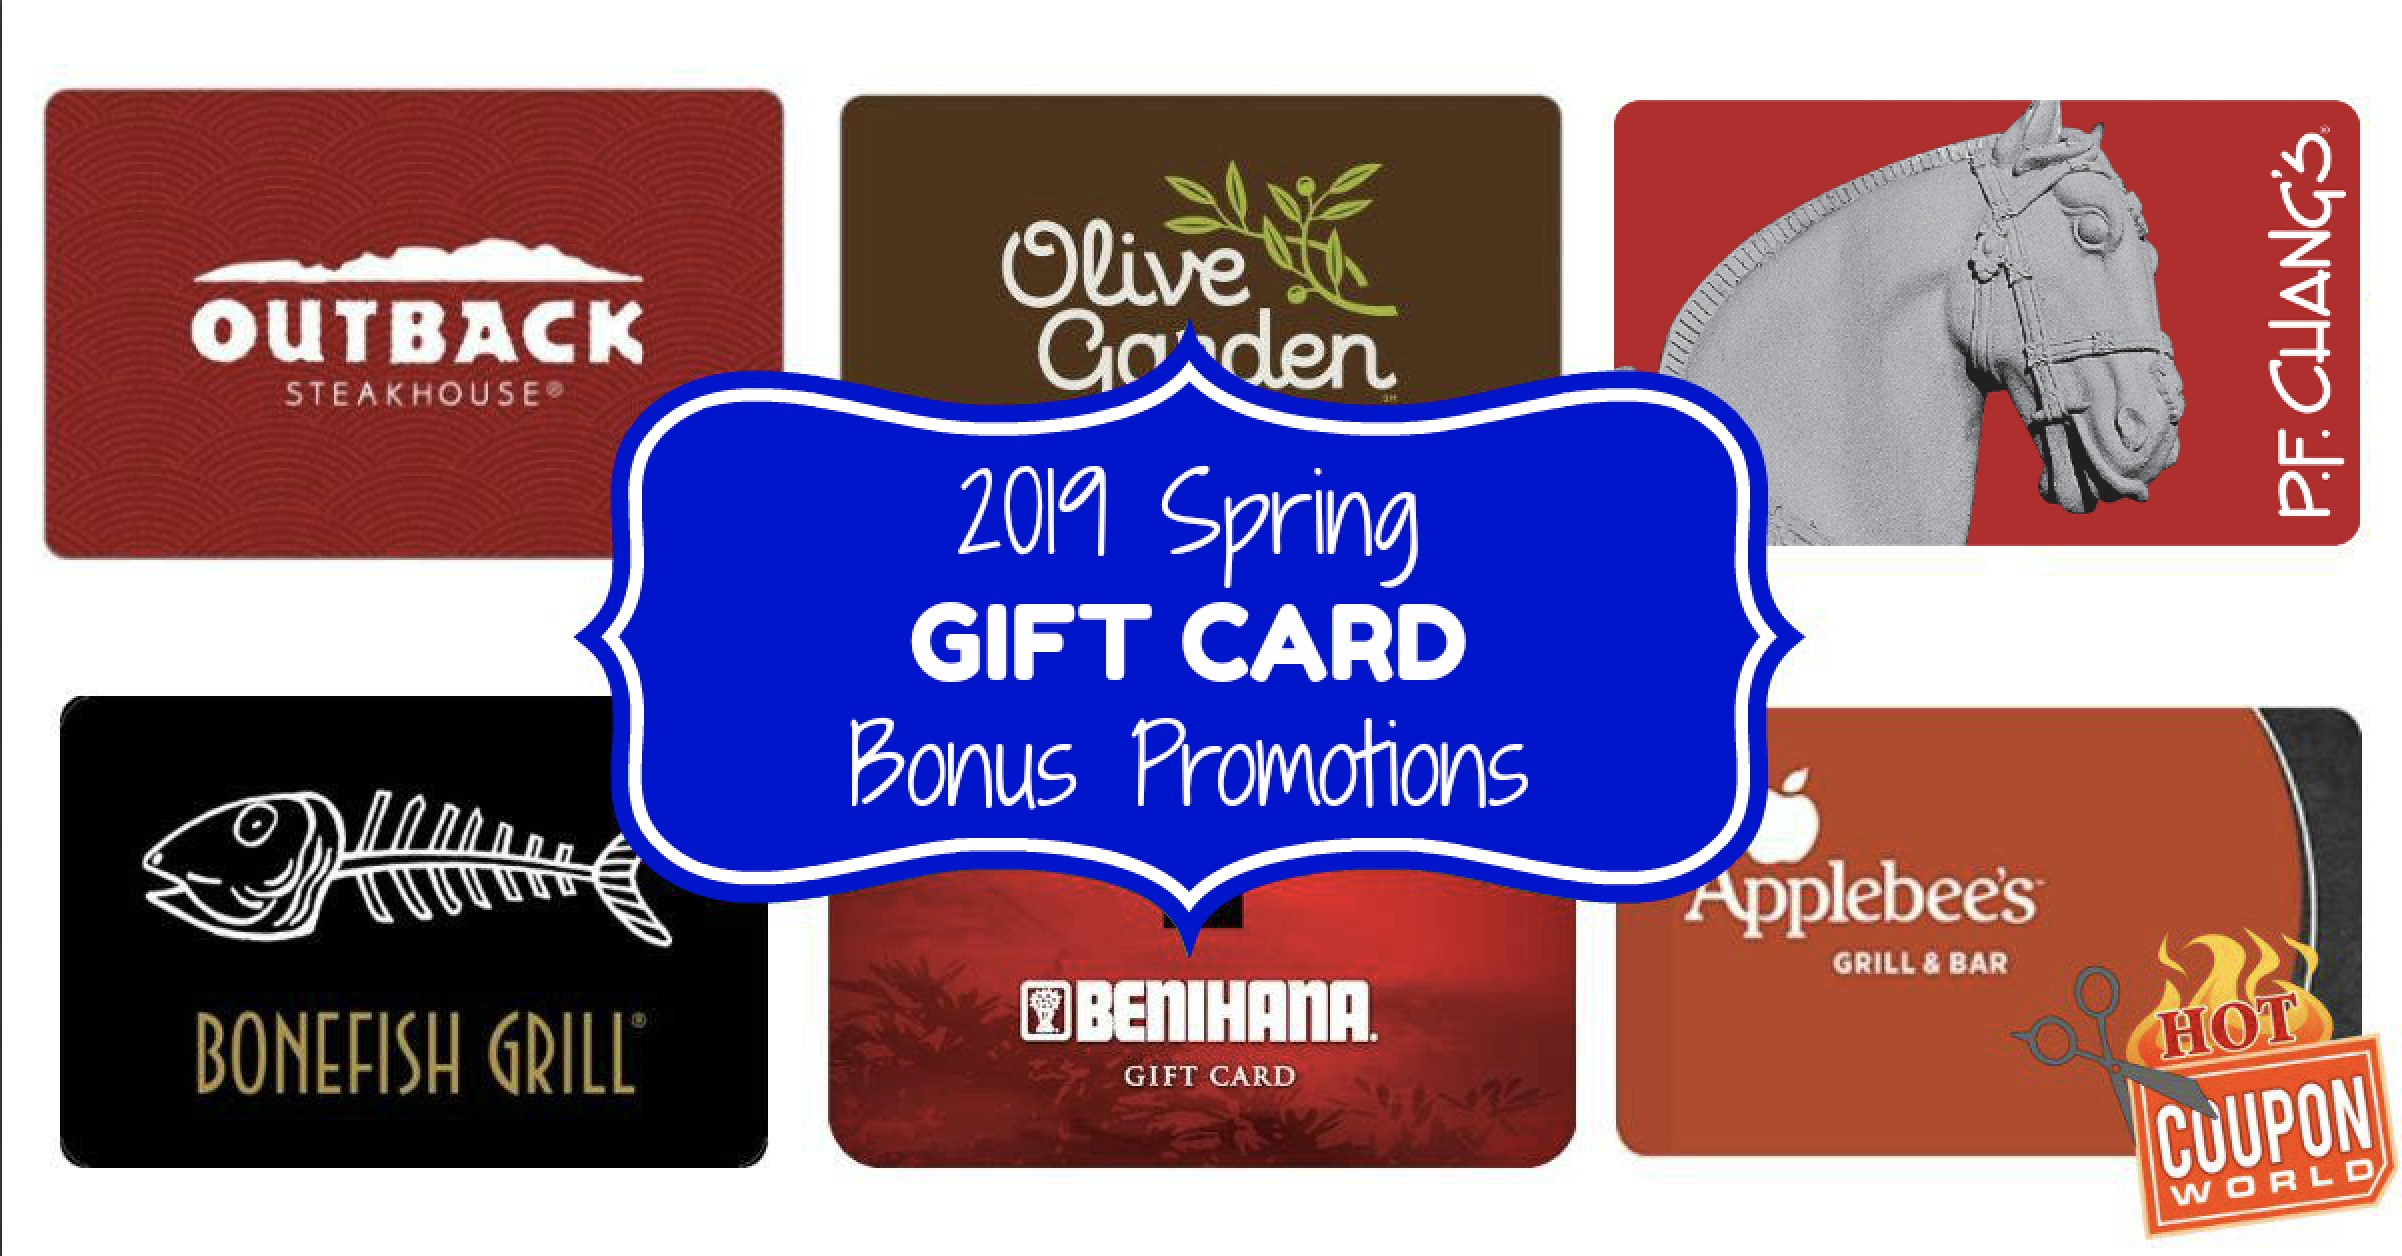 photograph regarding Genghis Grill Printable Coupon known as Cafe Present Card Reward Discounts for Spring Gifting